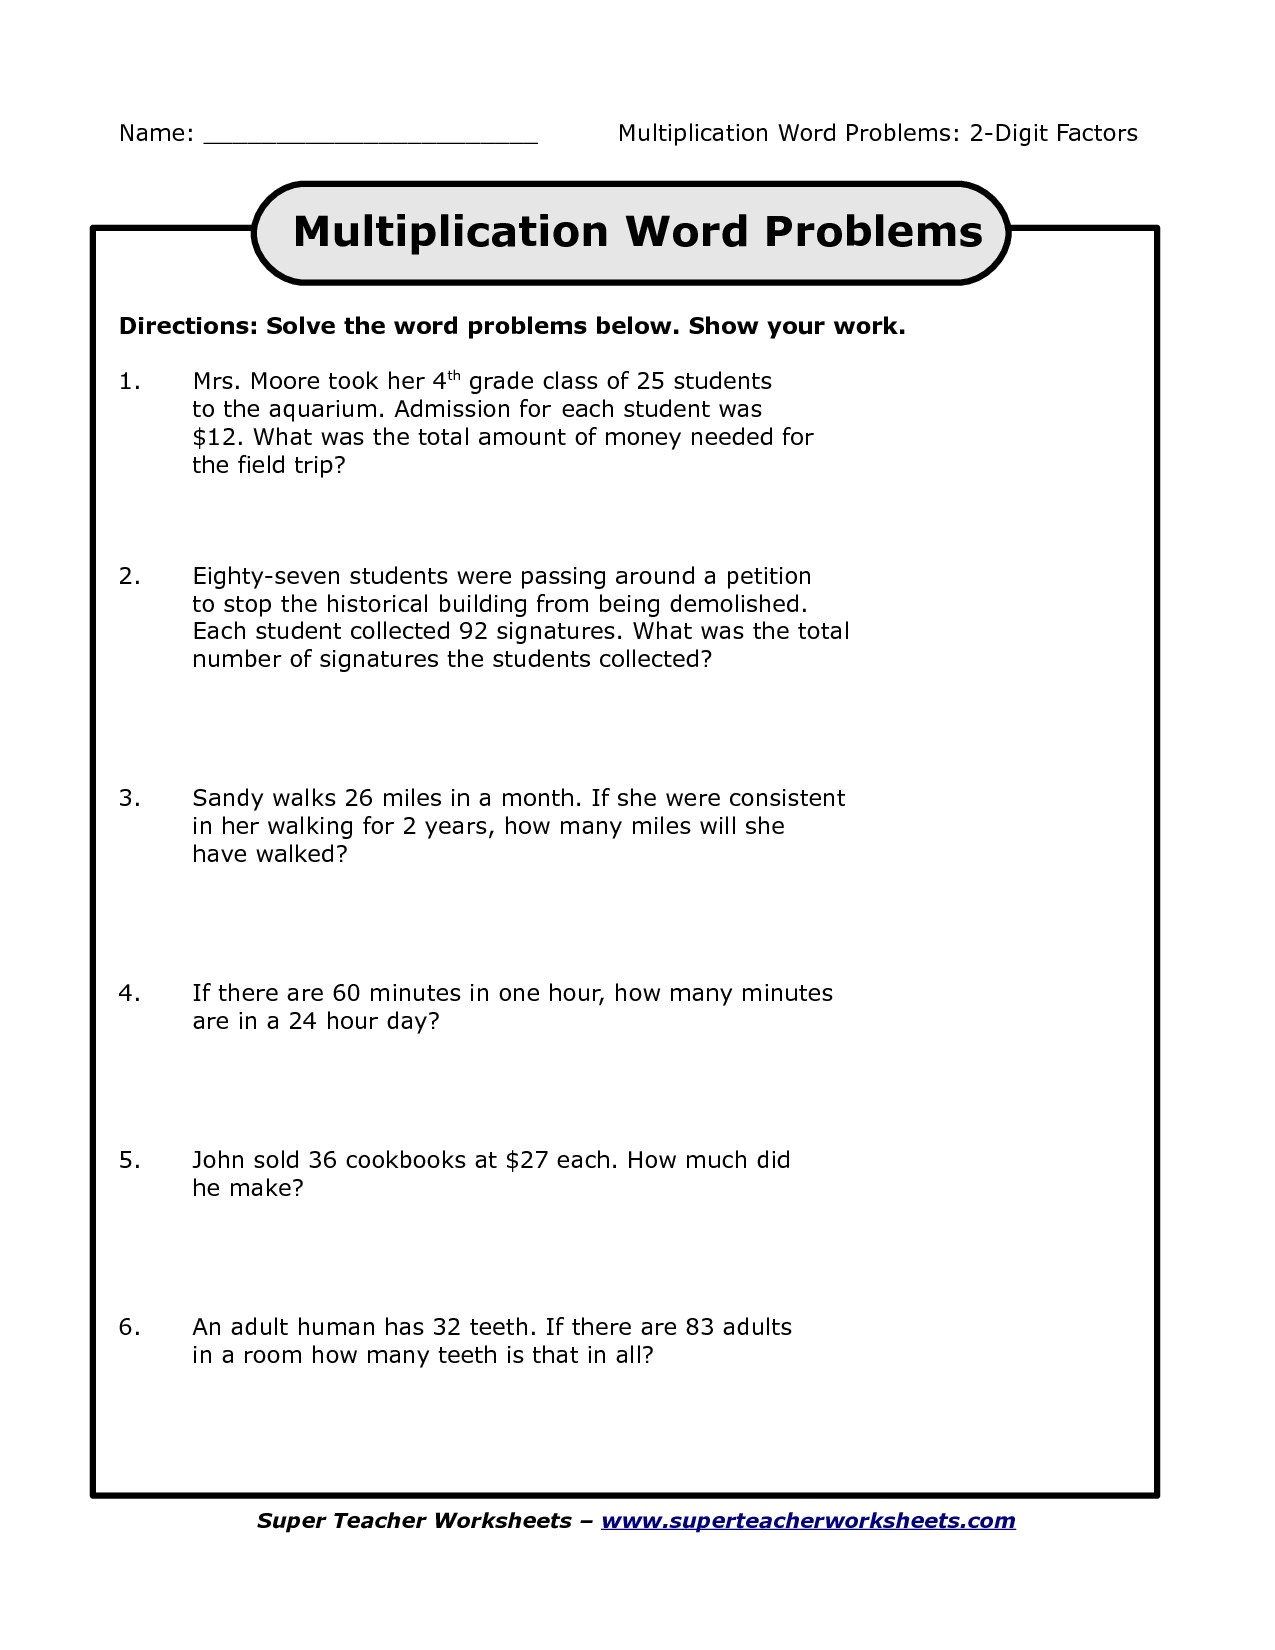 4th grade multiplication word problems_109246